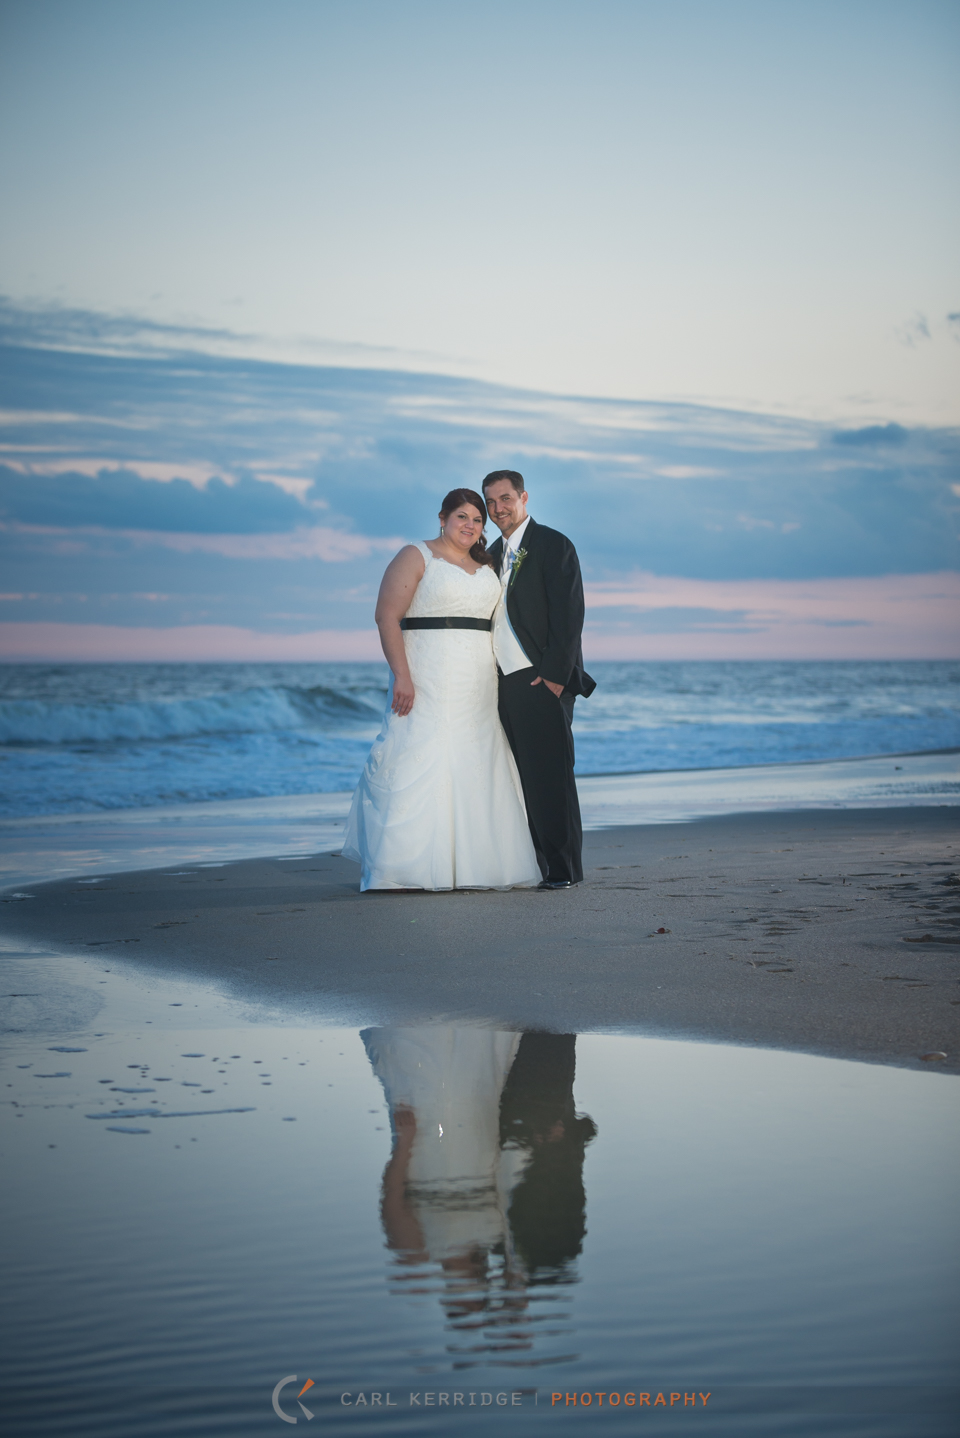 Myrtle Beach Wedding Photographer, Photojournalism, BW Wedding Image, Breakers Resort, Portraits, Beach, reflection